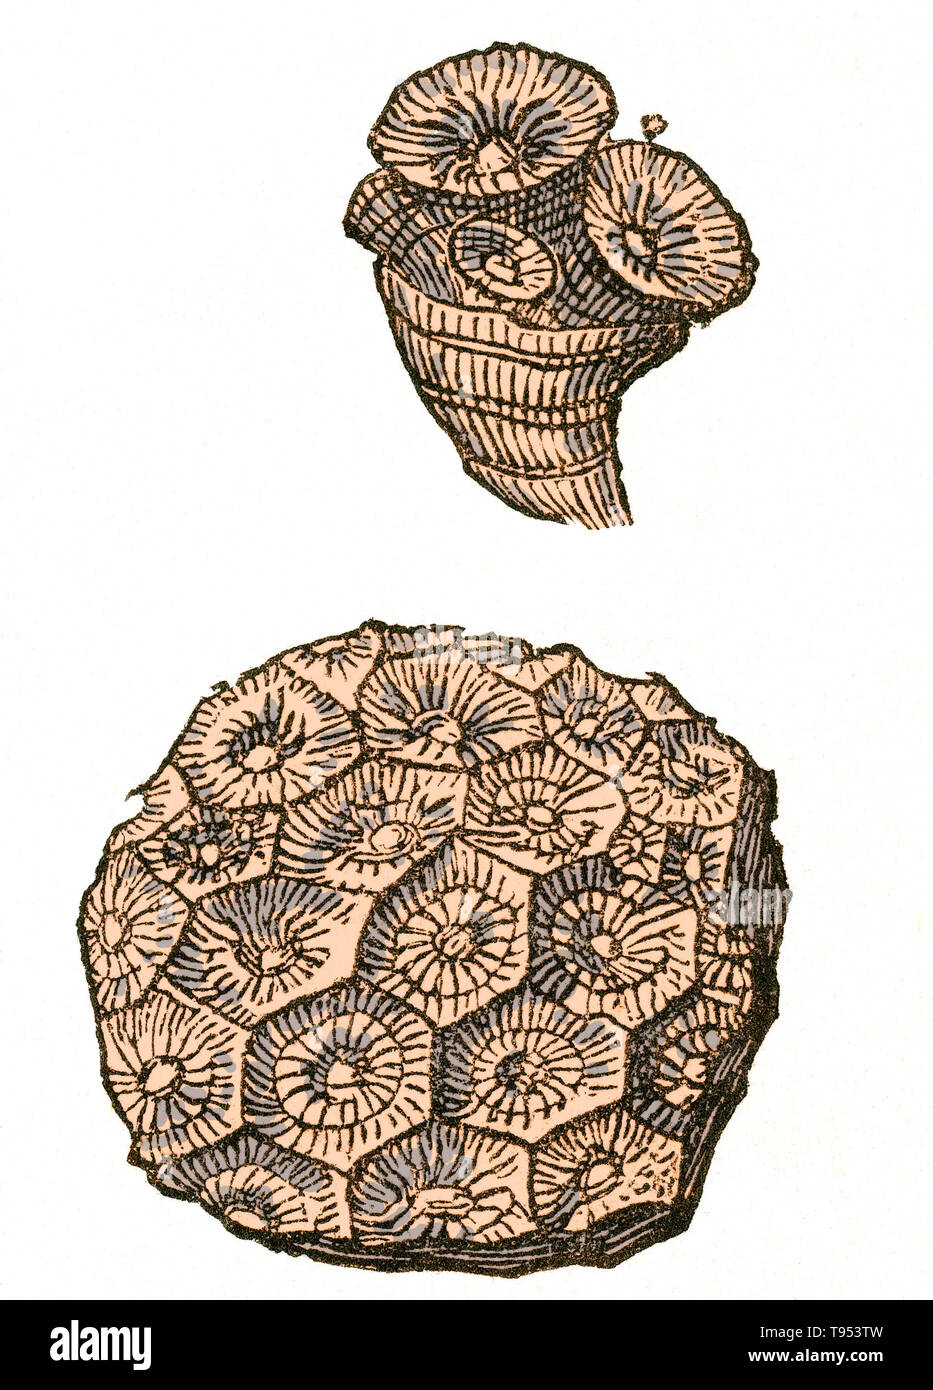 Fossil of a rugose coral colony (Lonsdaleia floriformis) that lived during the Carboniferous Period.  Illustration from Louis Figuier's The World Before the Deluge, 1867 American edition. - Stock Image